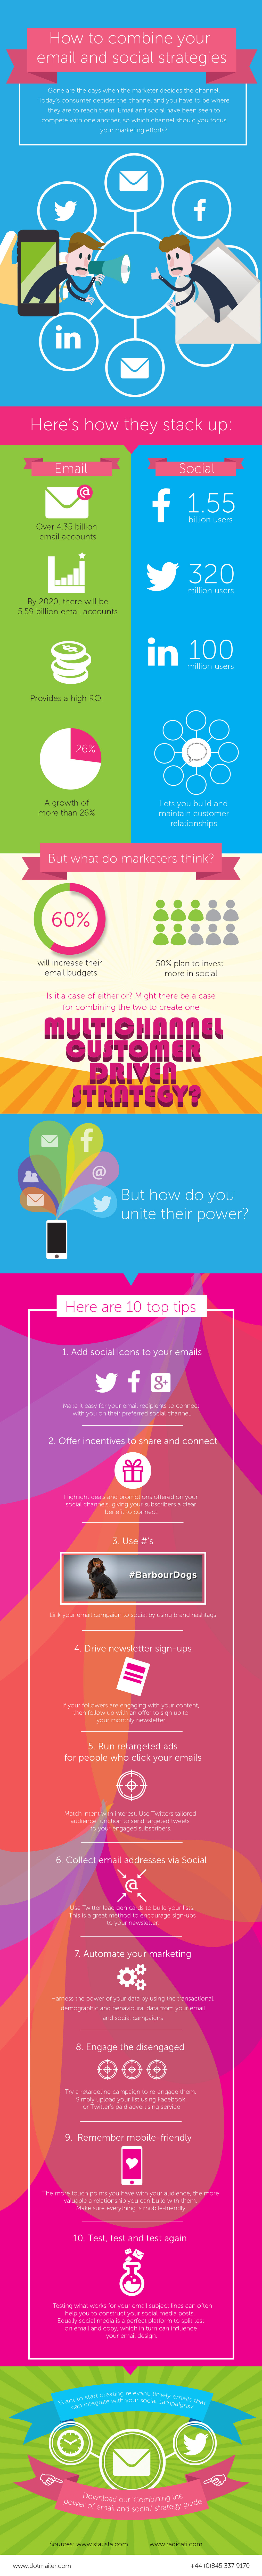 How to combine your email and social strategies [INFOGRAPHIC]